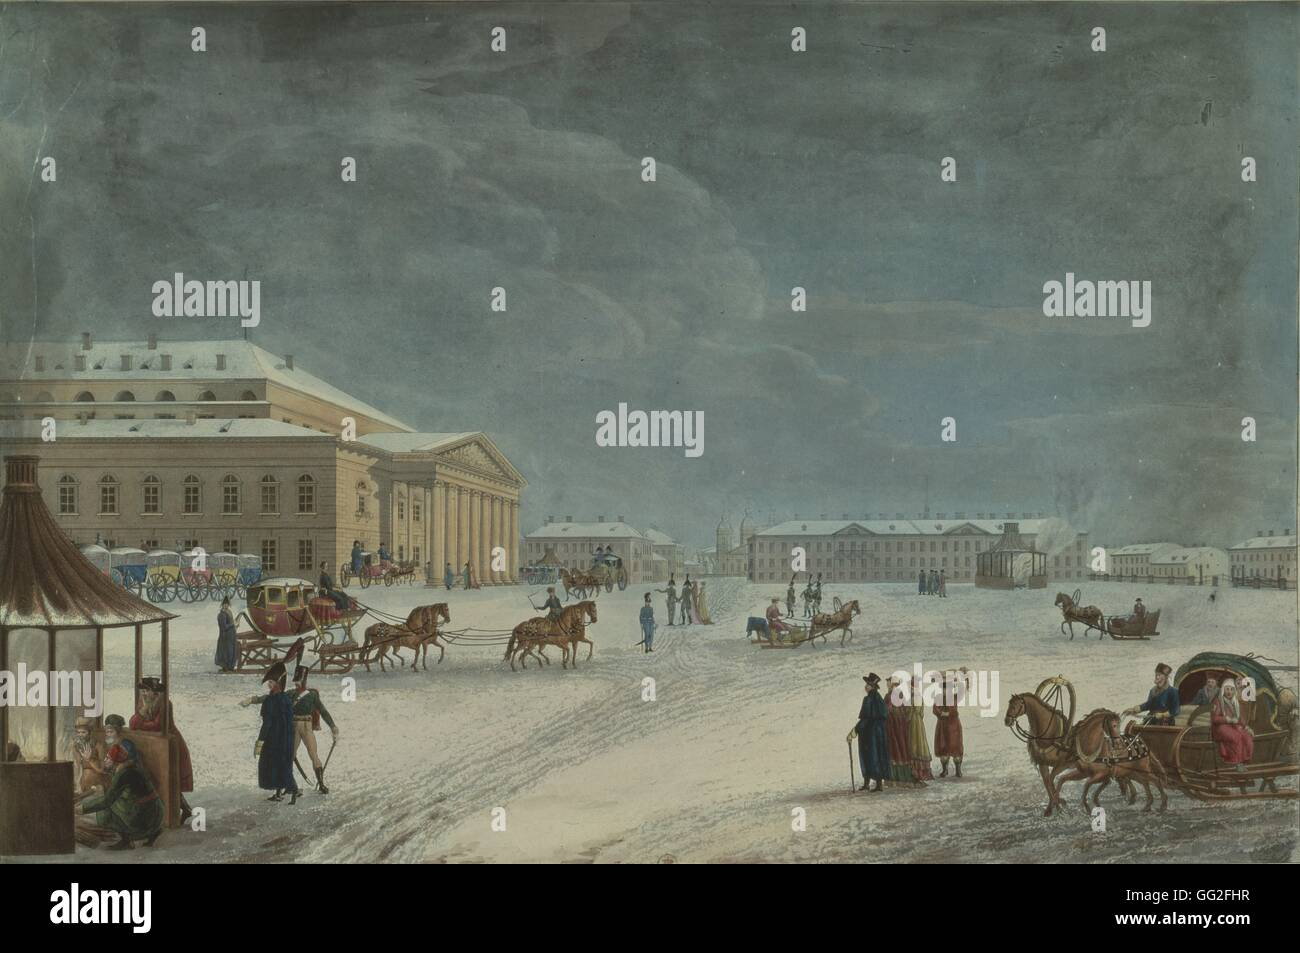 View of the Square and the Alexandrinsky Imperial Ballet Theatre Lithography, 1817 - Stock Image